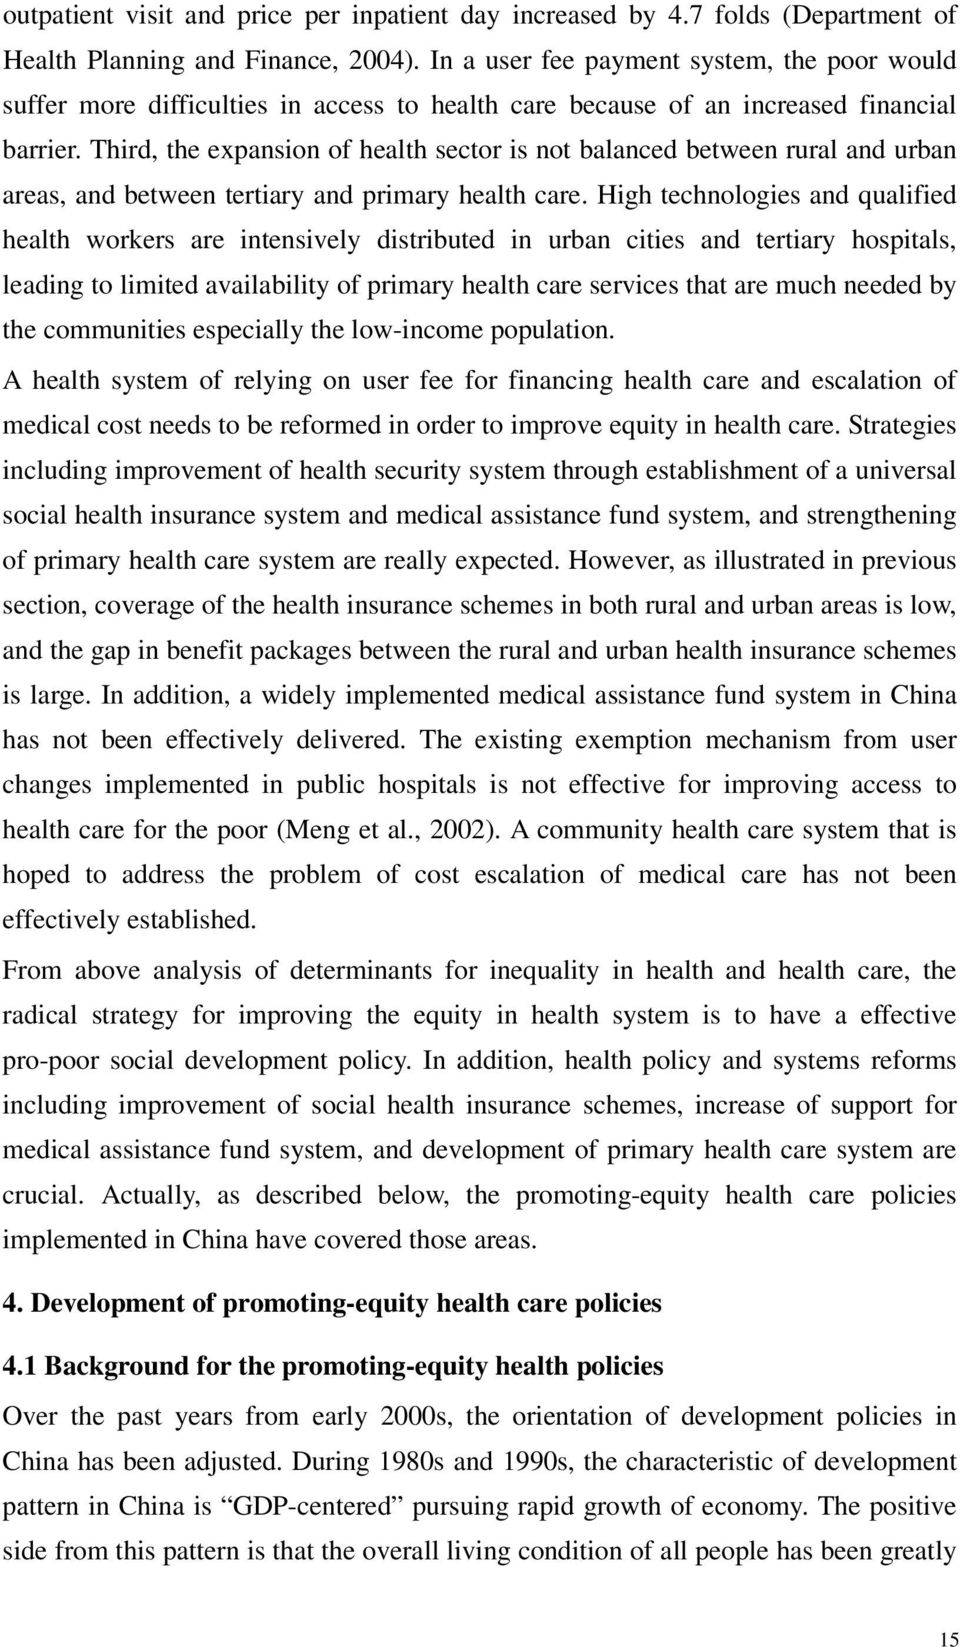 Third, the expansion of health sector is not balanced between rural and urban areas, and between tertiary and primary health care.